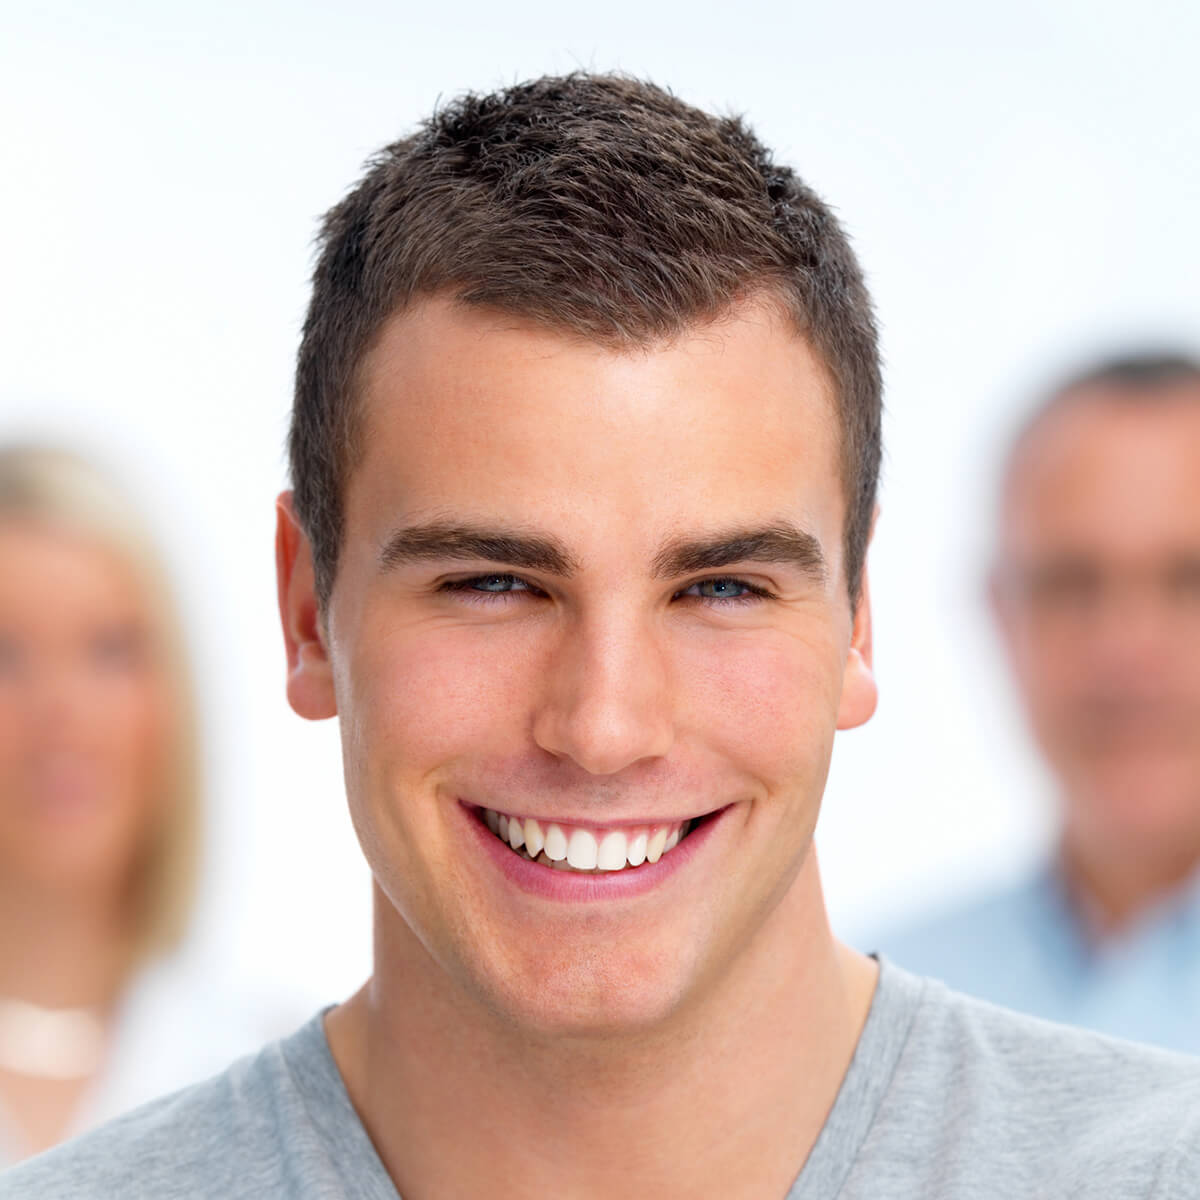 Cosmetic Dental Bonding in El Dorado Area